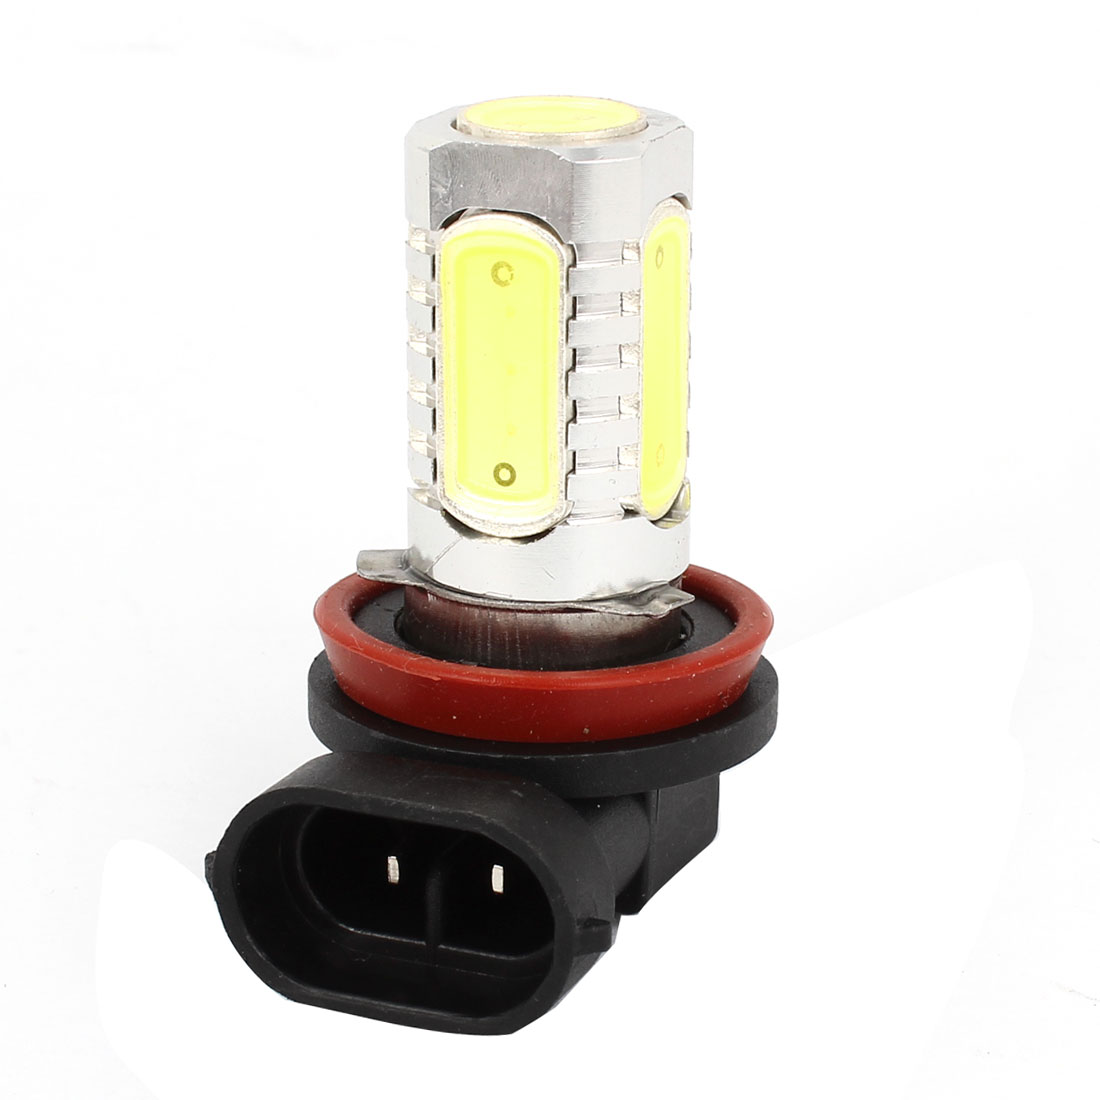 DC 12V 7.5W H11 White LED Fog Light Foglight Headlamp Bulb for Car